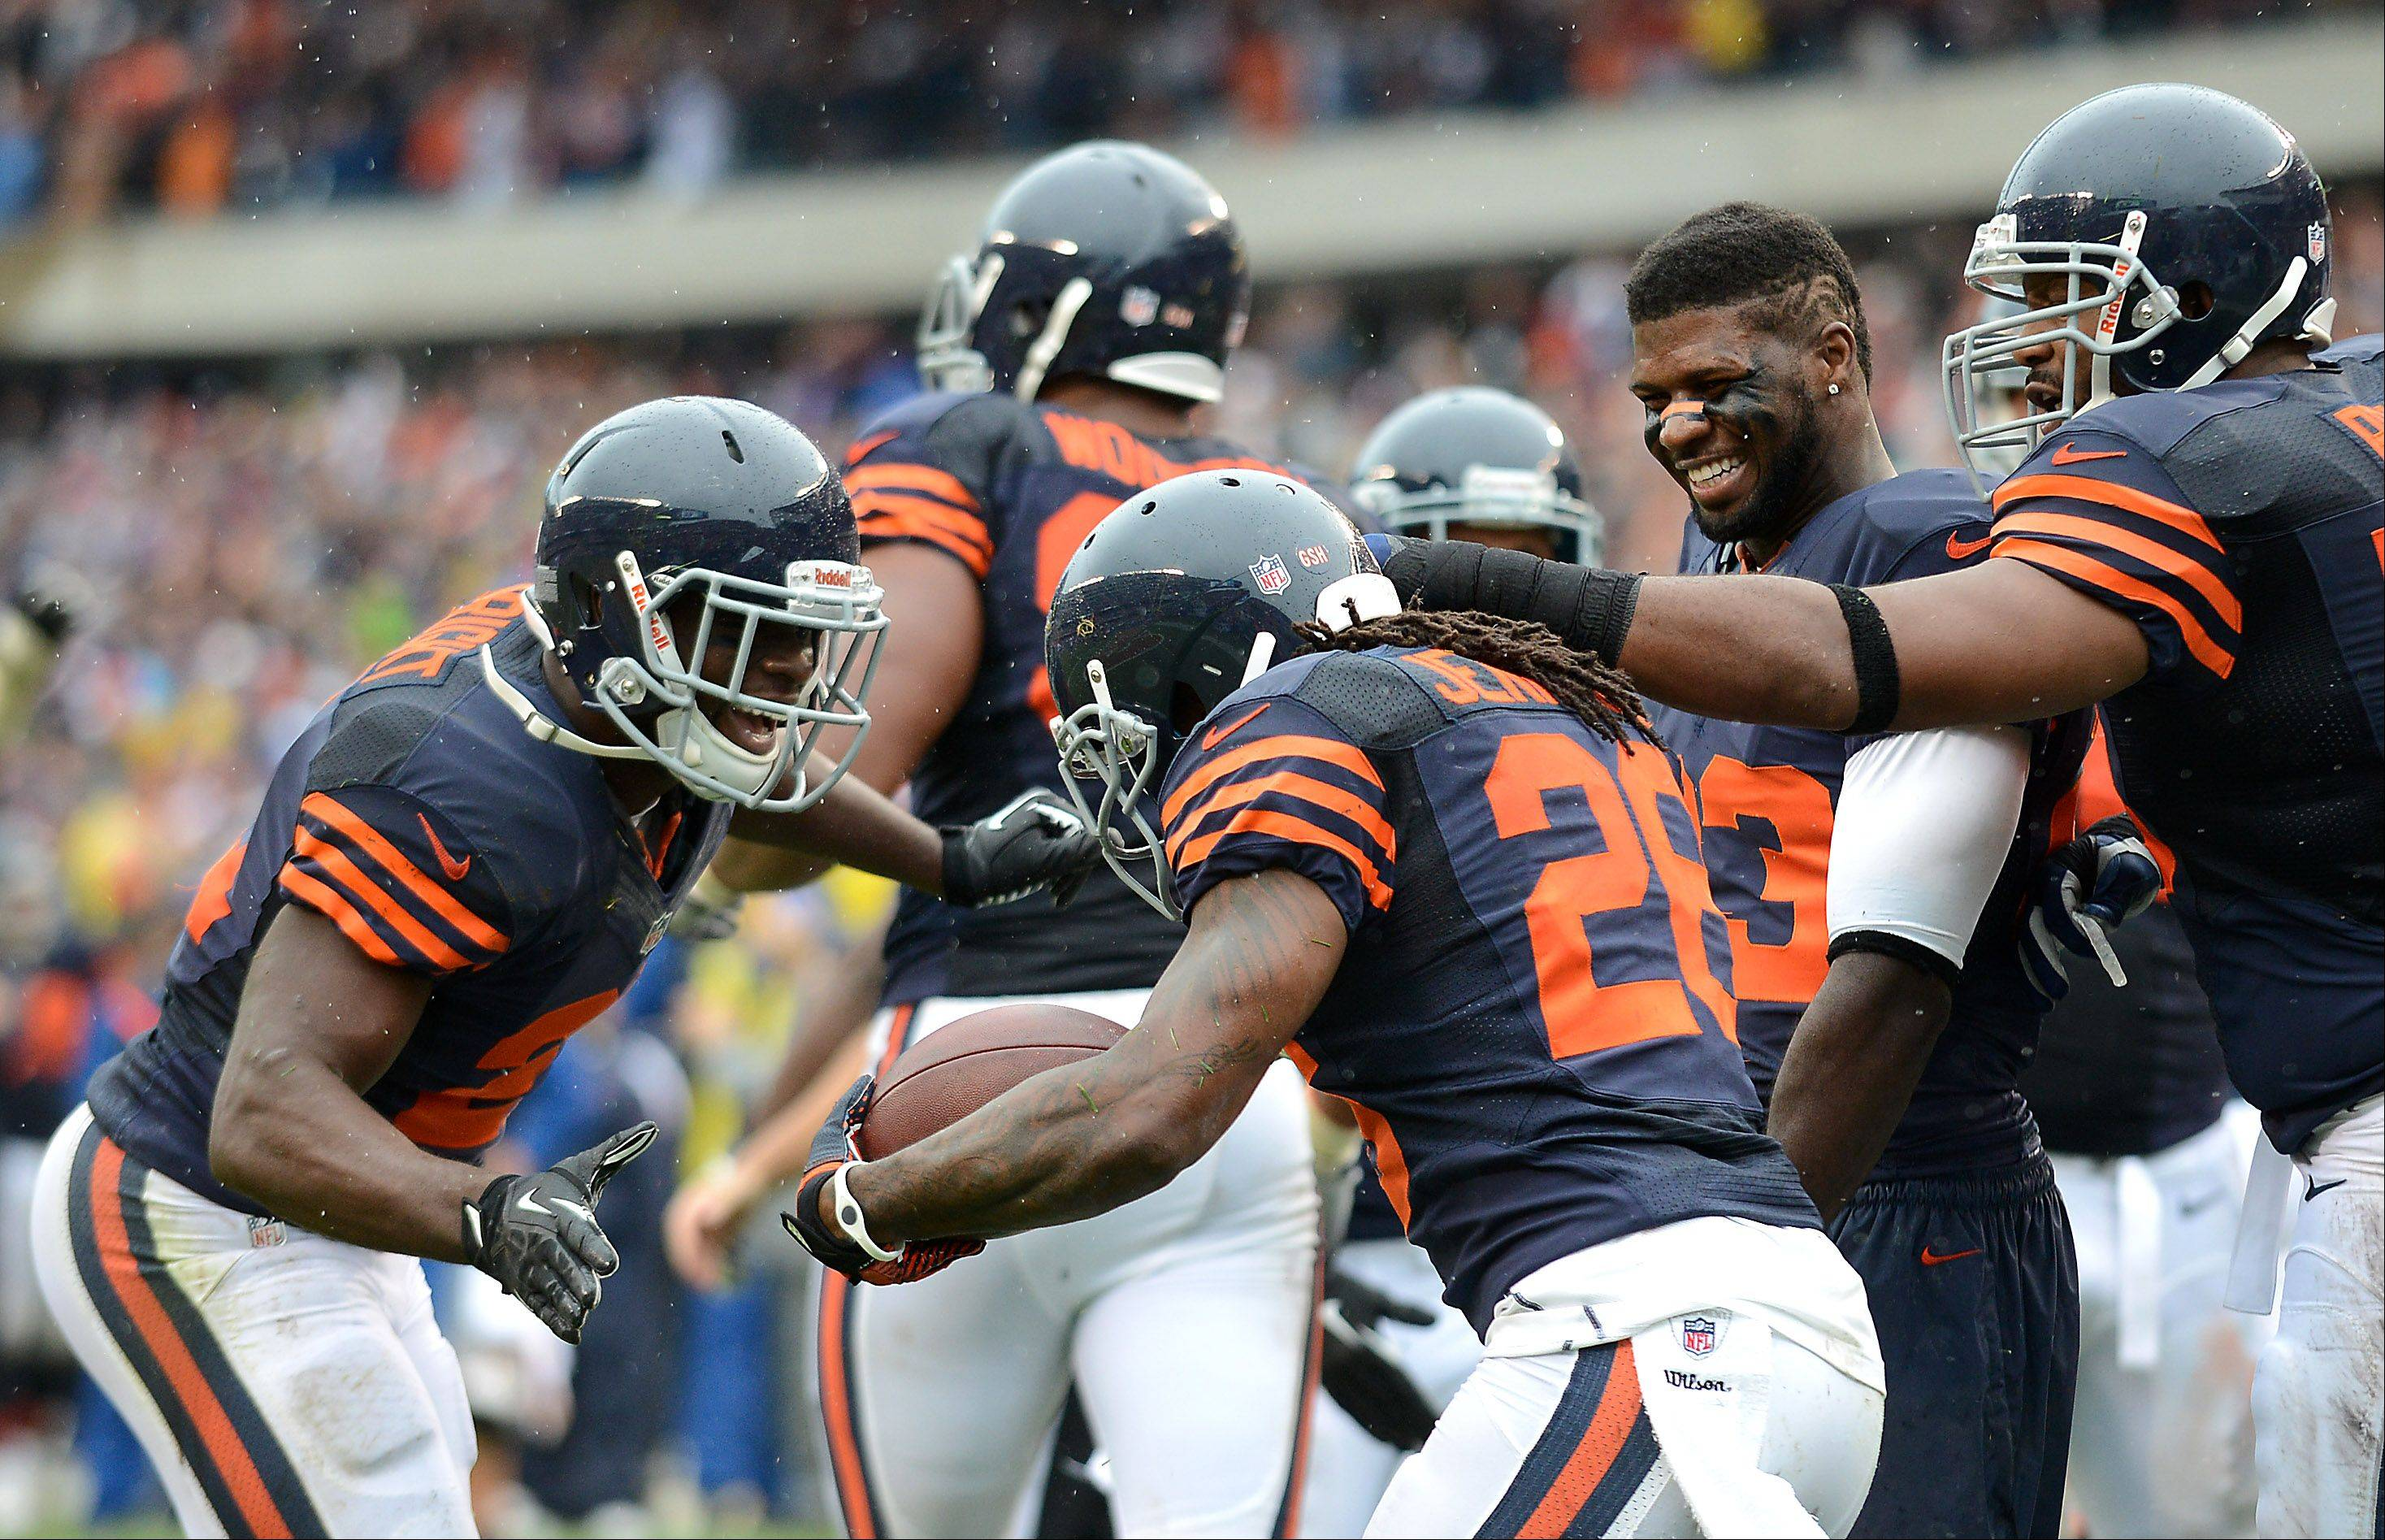 Teammates congratulate Chicago Bears cornerback Tim Jennings (26) after his interception return for a TD during Sunday's game at Soldier Field in Chicago.